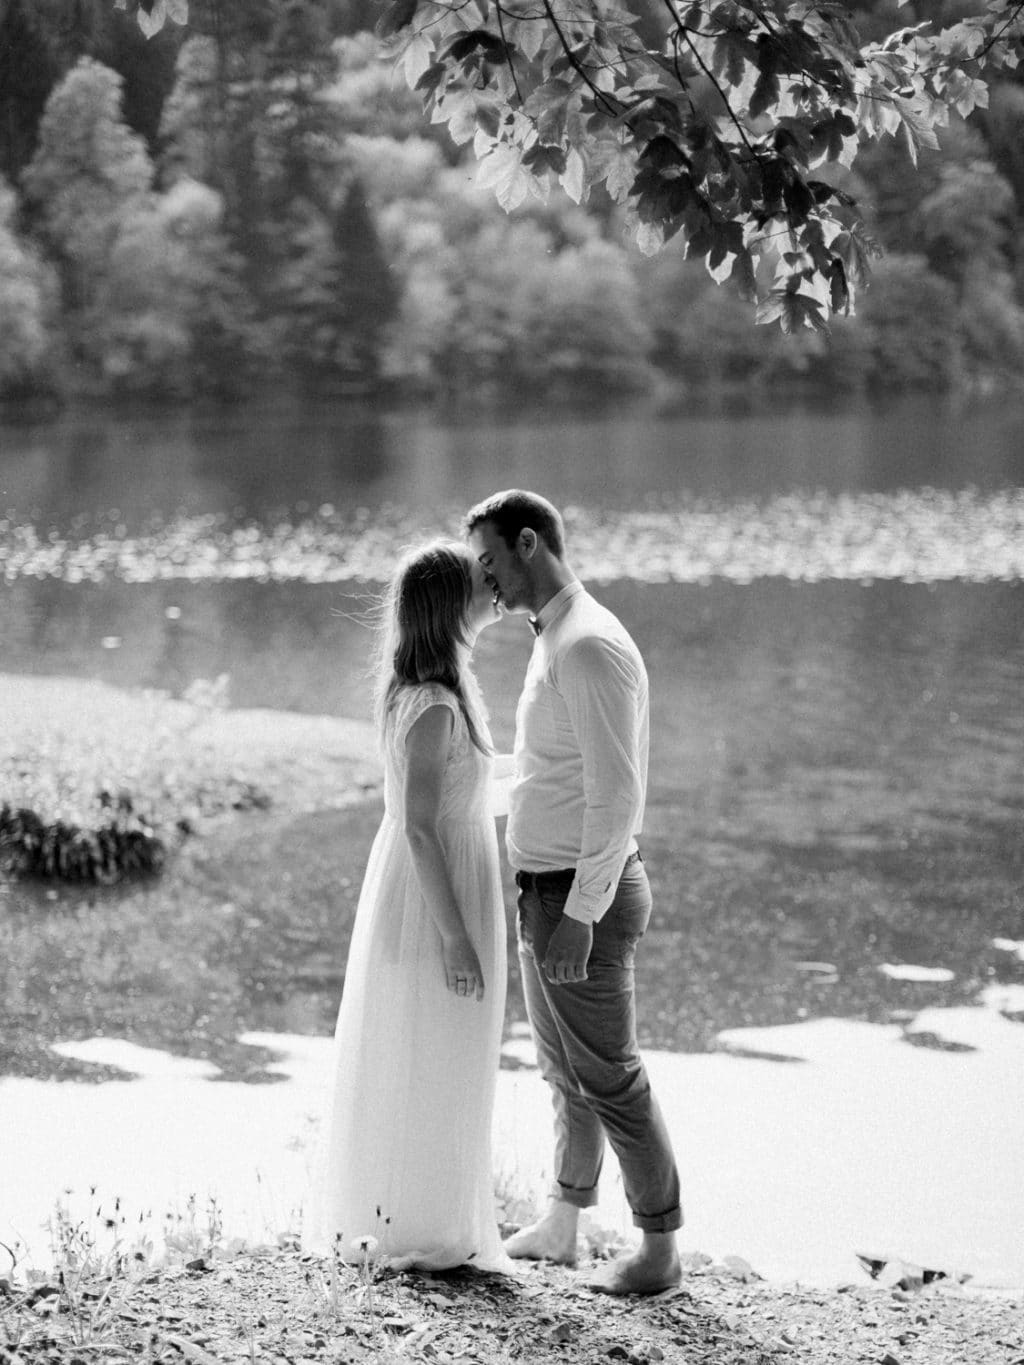 capyture-wedding-photographer-destination-wedding-france-0616